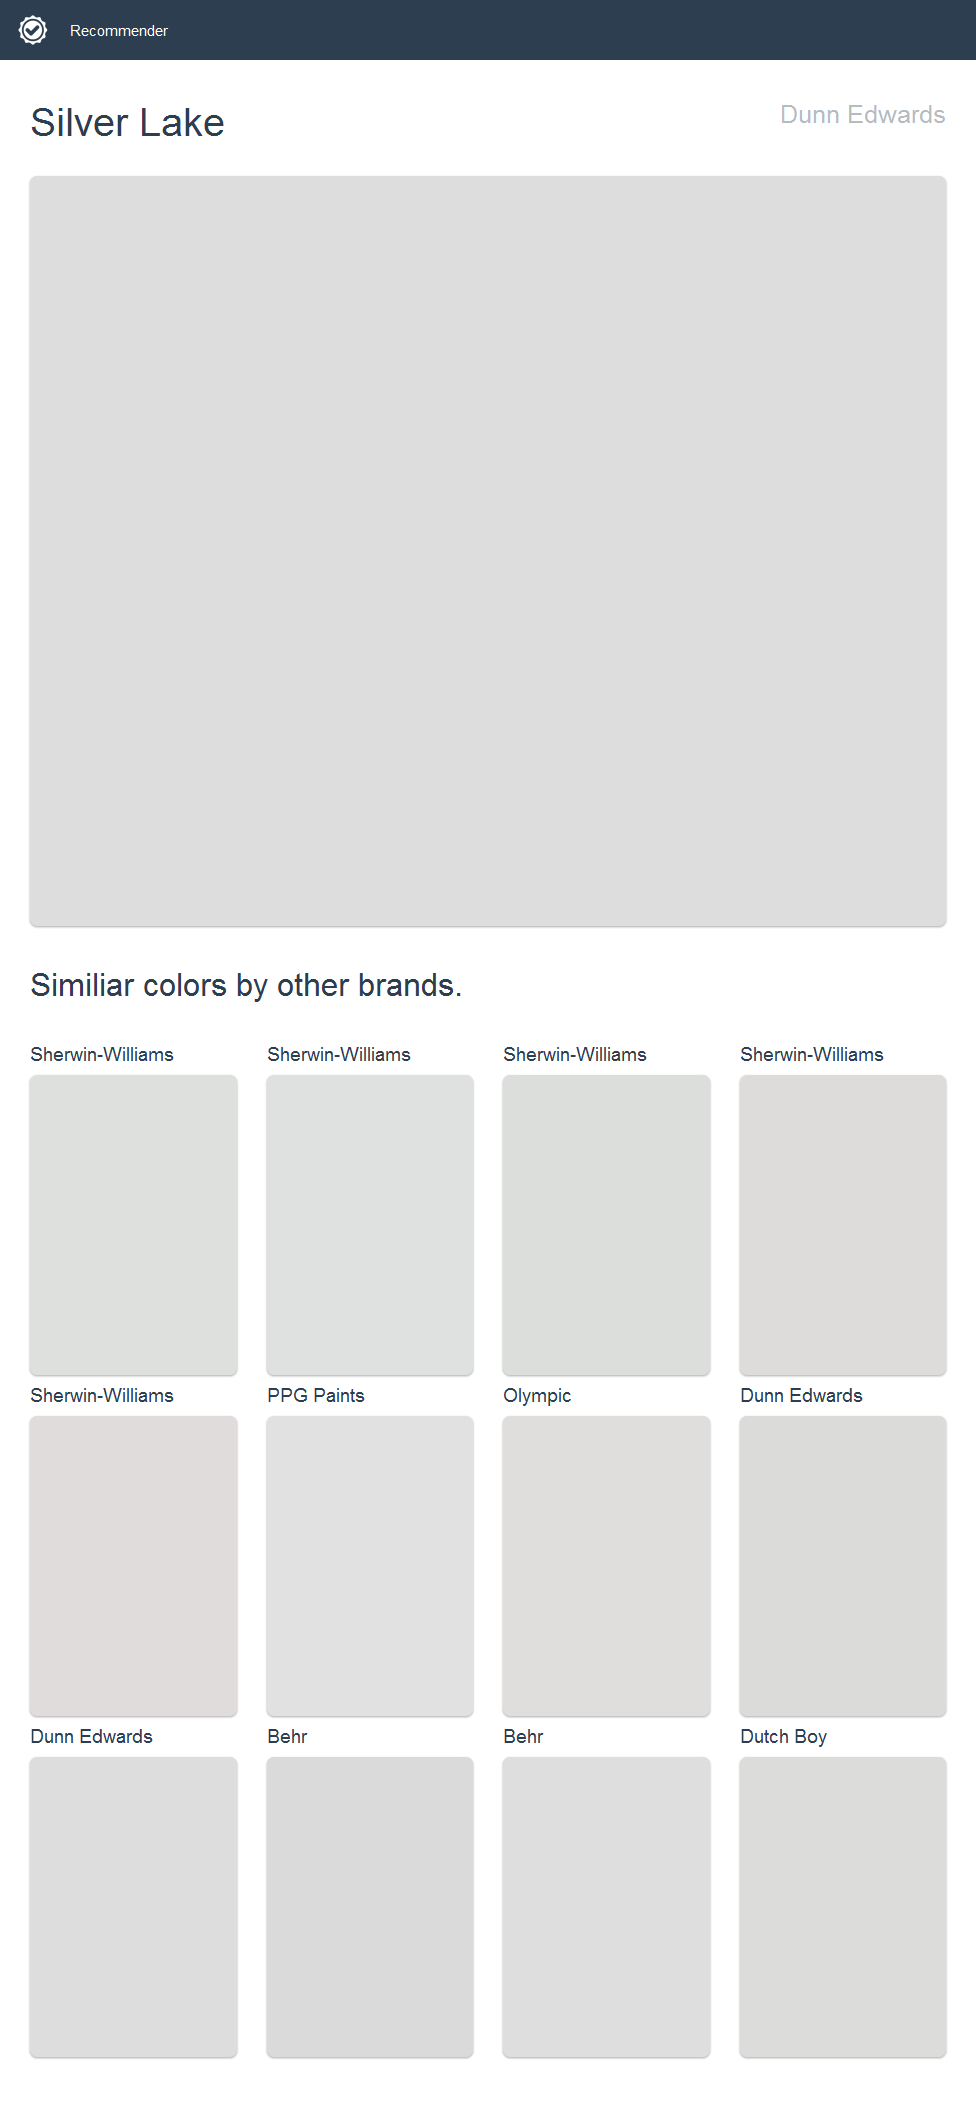 Silver Lake Dunn Edwards Click The Image To See Similiar Colors By Other Brands Dunn Edwards Paint House Paint Exterior Behr Paint Colors